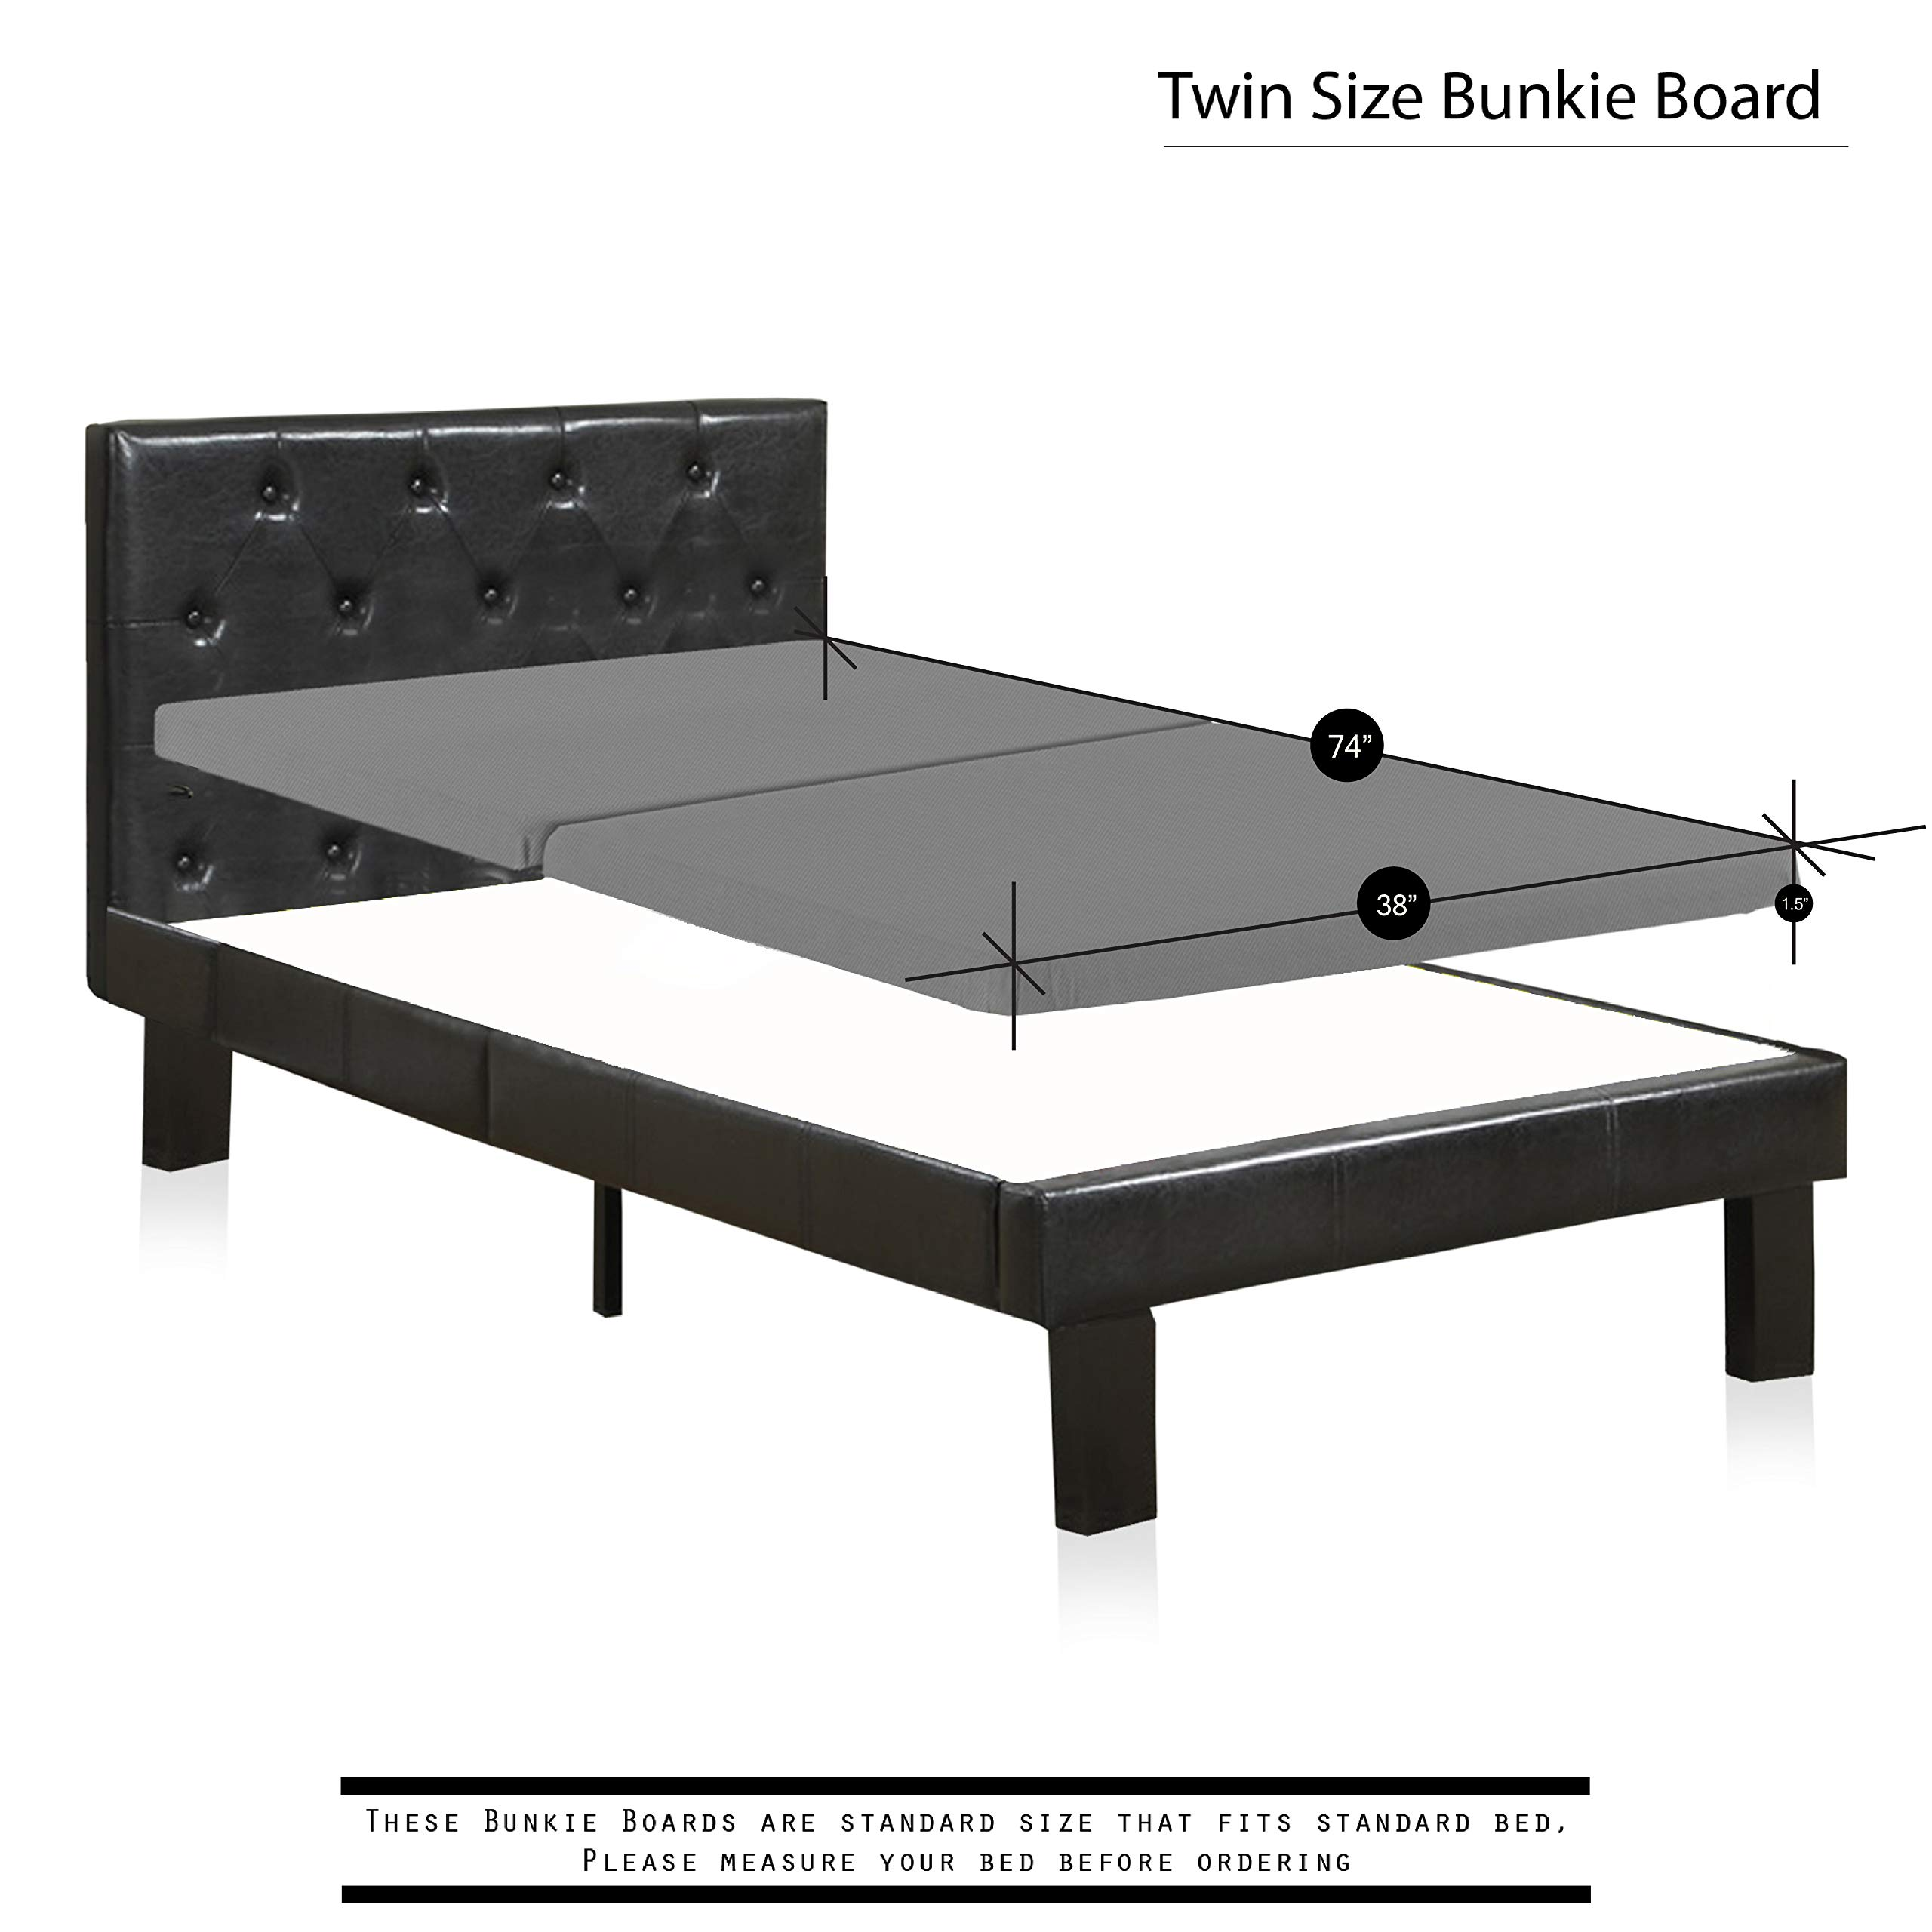 Greaton BBvv-3/3s Solid Wood Set Of Two Bunkie Board Mattress/Bed Support, Fits Standard, Twin Size, Grey by Greaton